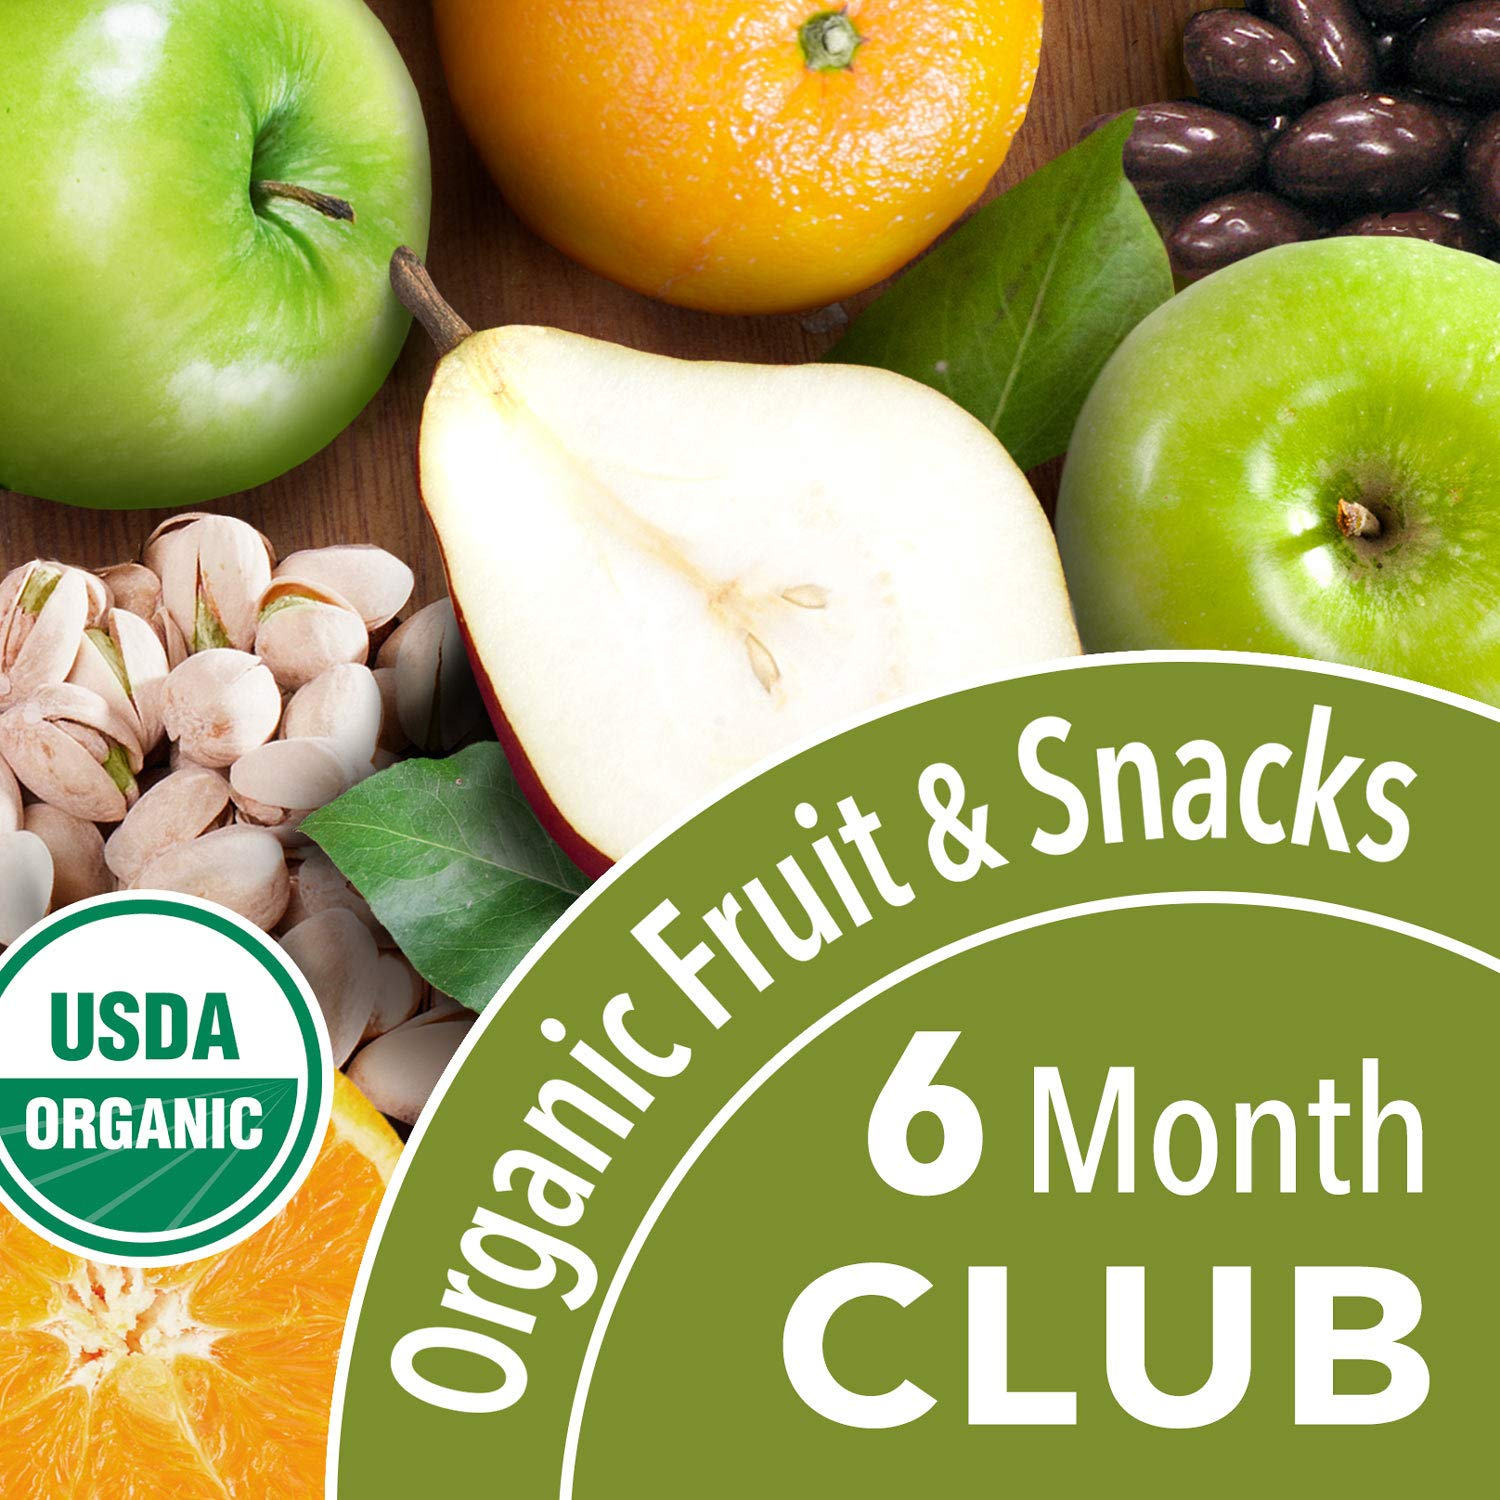 Organic Fruit and Snack Club - 6 Months (Choice of 3, 6, 9 or 12 Mos.)